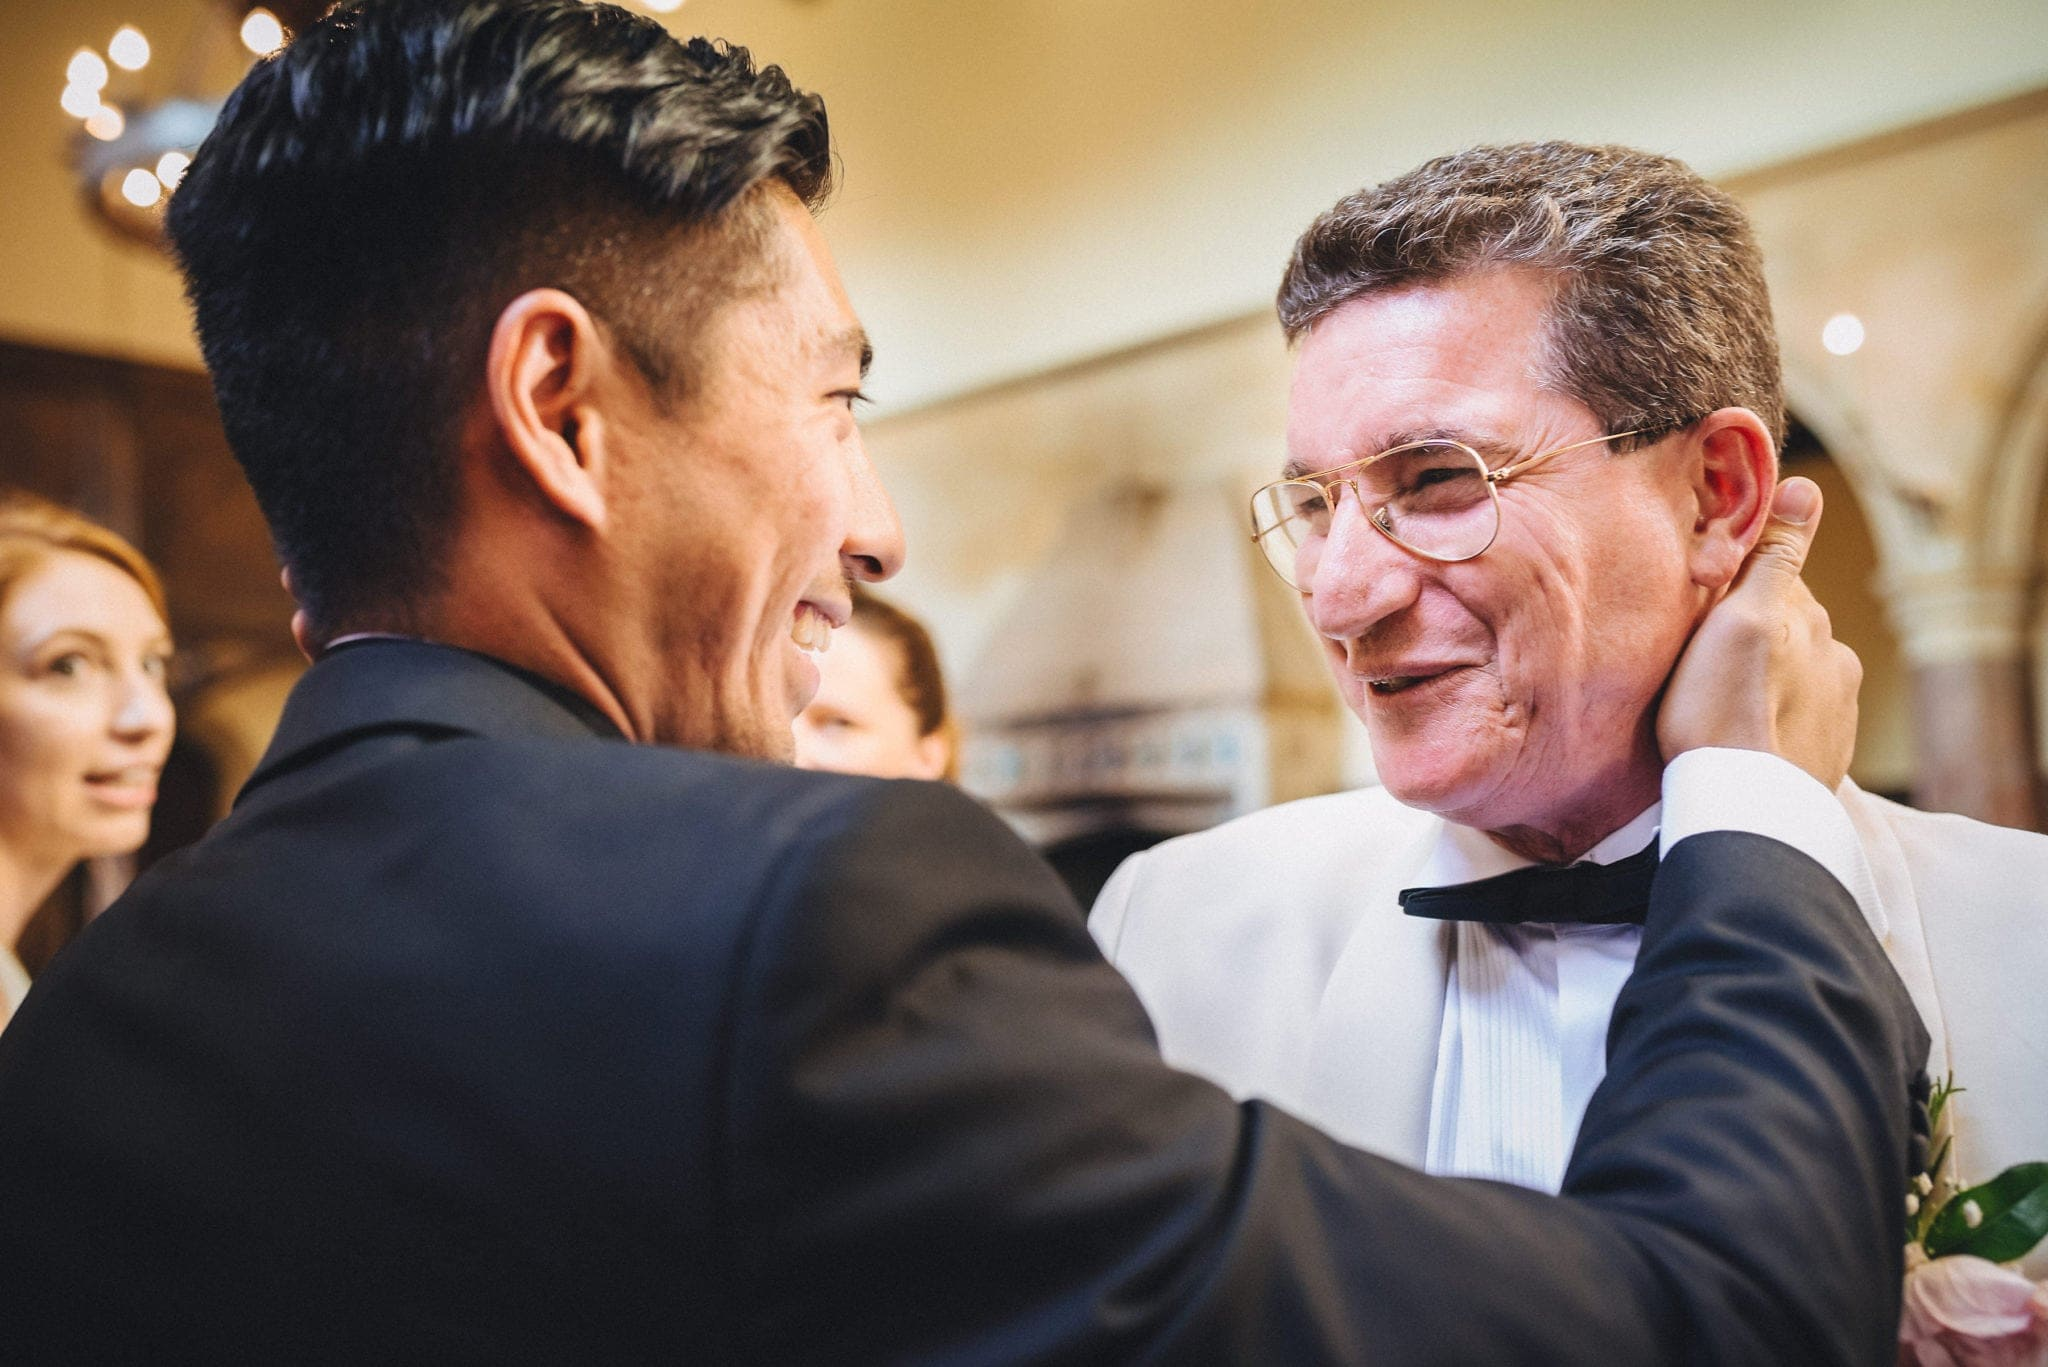 Groom and father of the bride share a tender moment